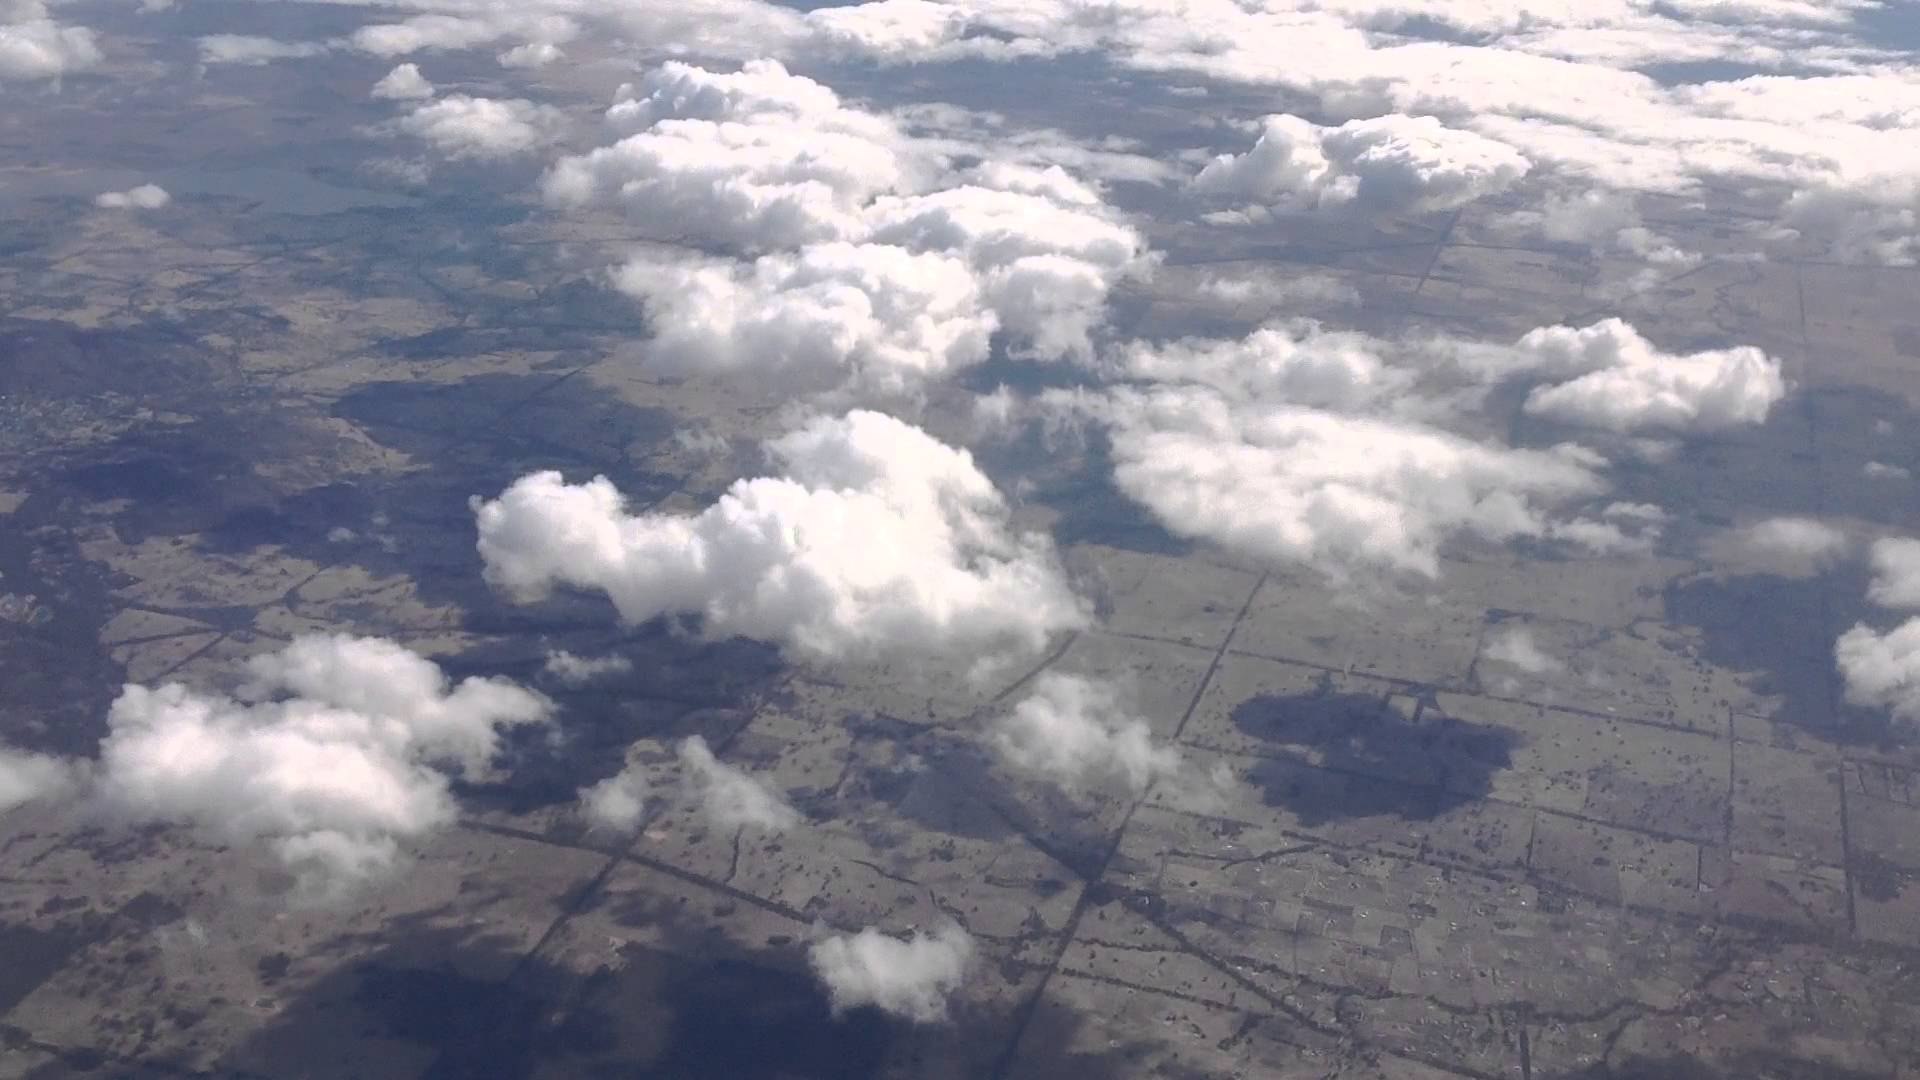 Ground seen from the sky on top of the clouds